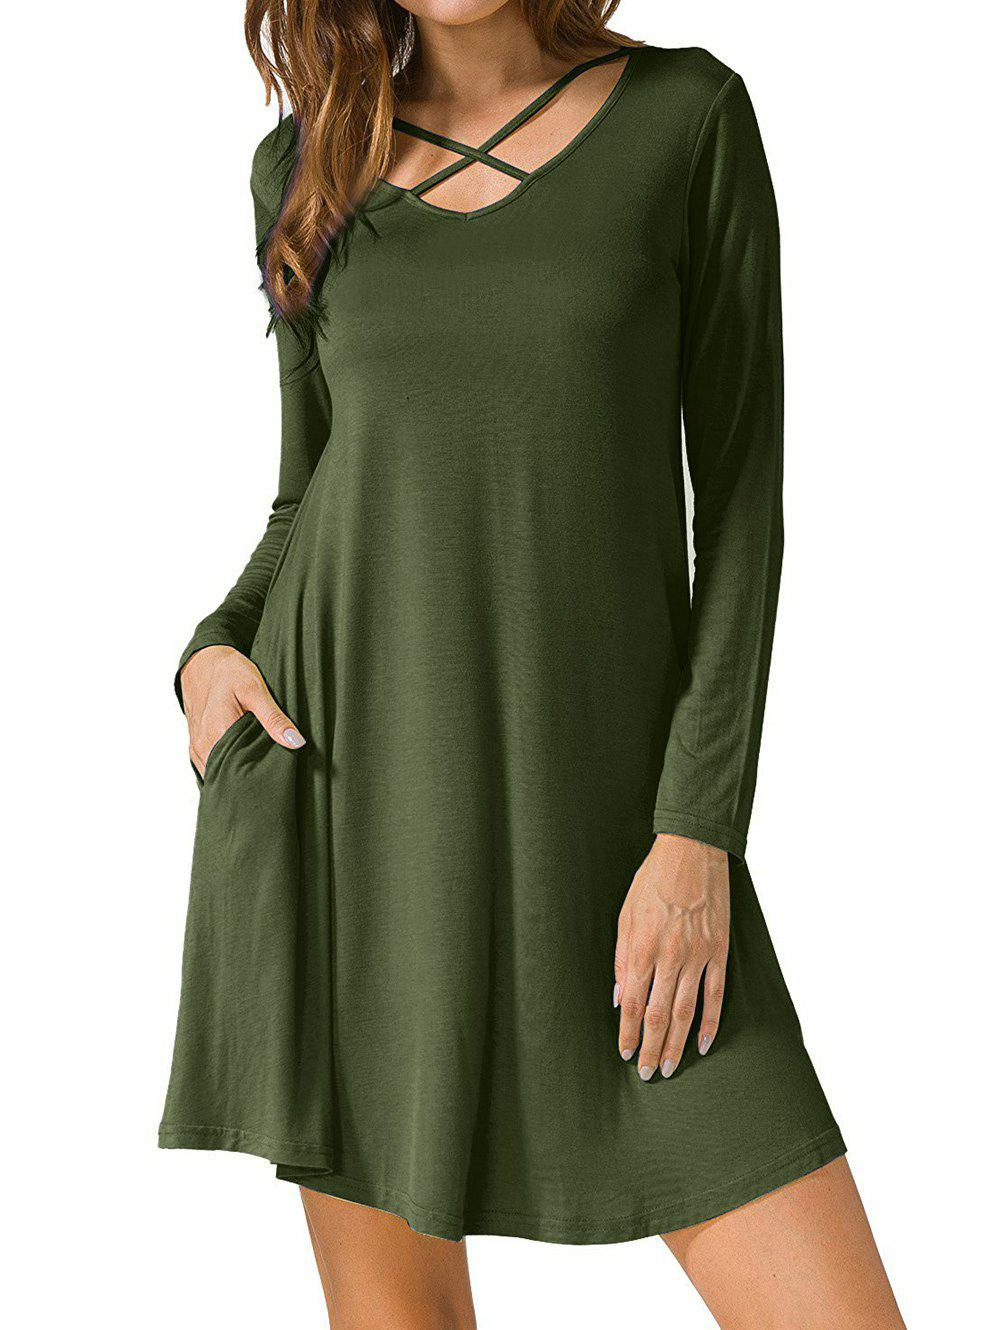 Long Sleeve V Neck T-shirt Skater DressWOMEN<br><br>Size: L; Color: ARMY GREEN; Style: Casual; Material: Polyester; Silhouette: A-Line; Dress Type: Swing Dress,Tee Dress; Dresses Length: Mini; Neckline: V-Neck; Sleeve Length: Long Sleeves; Embellishment: Criss-Cross; Pattern Type: Solid Color; With Belt: No; Season: Fall,Spring; Weight: 0.2900kg; Package Contents: 1 x Dress; Occasion: Casual;